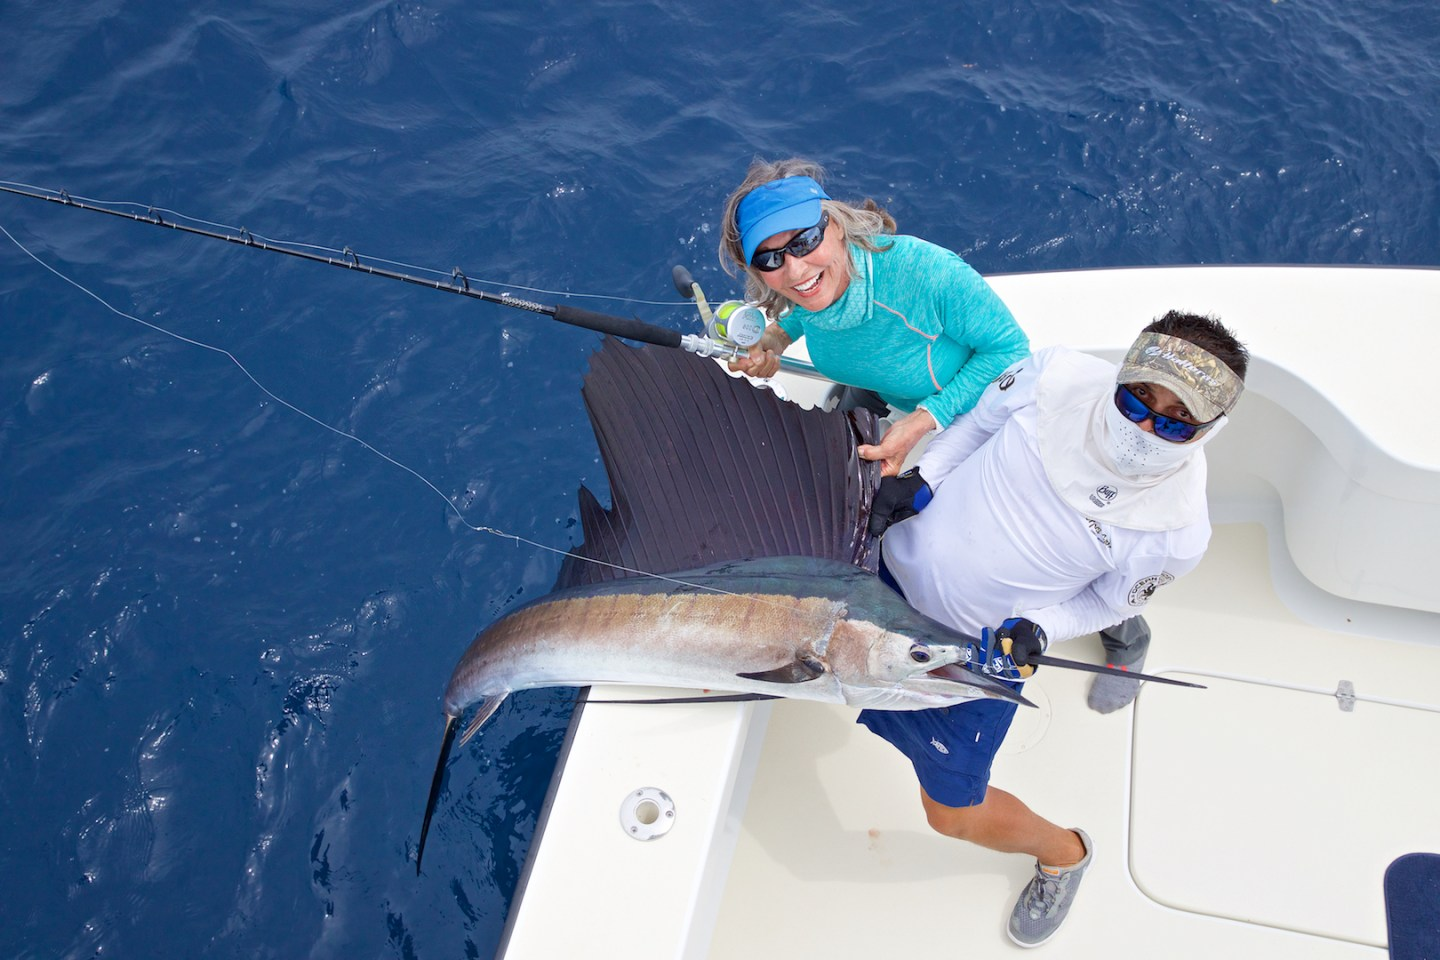 a bird's eye view of an angler and guide posing with a Sailfish they just caught